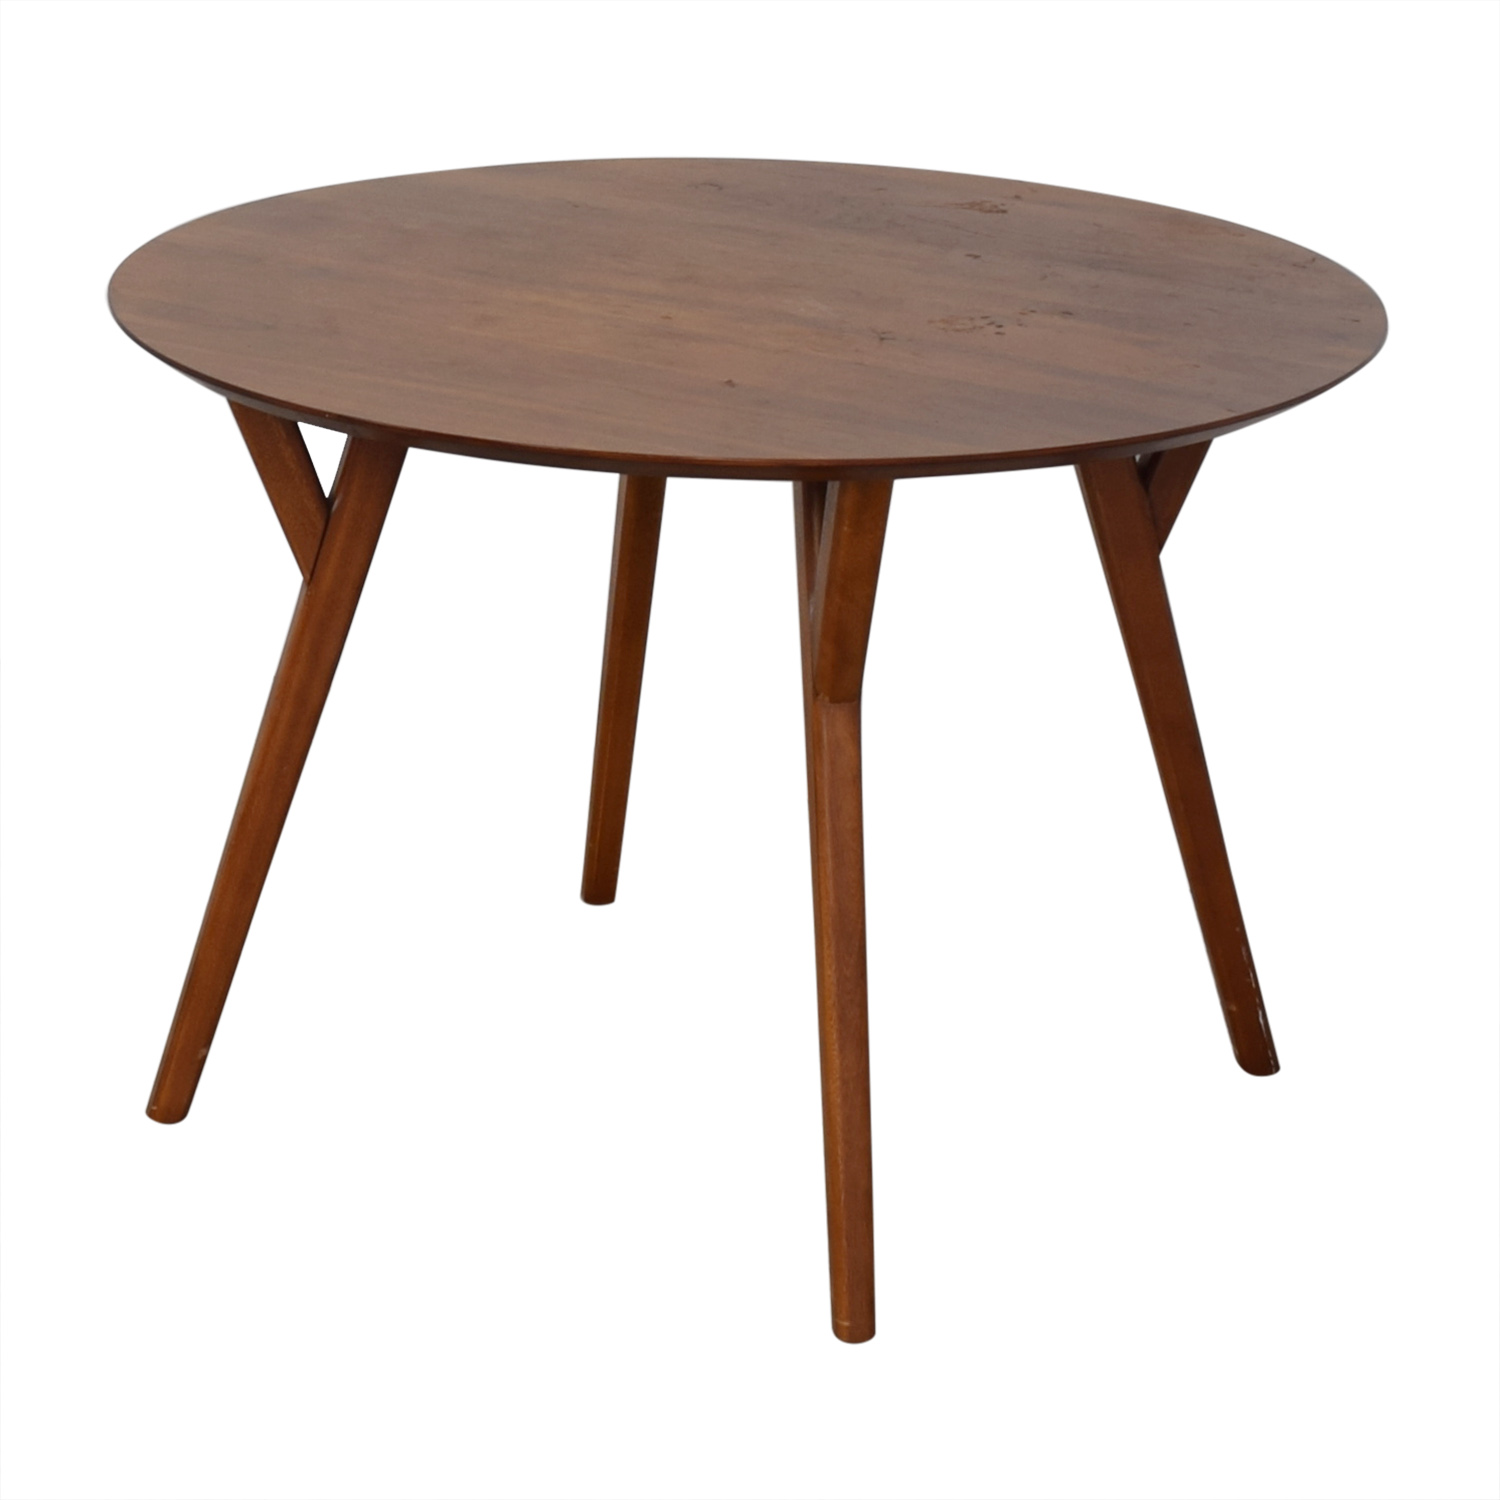 West Elm West Elm Round Dining Table dimensions